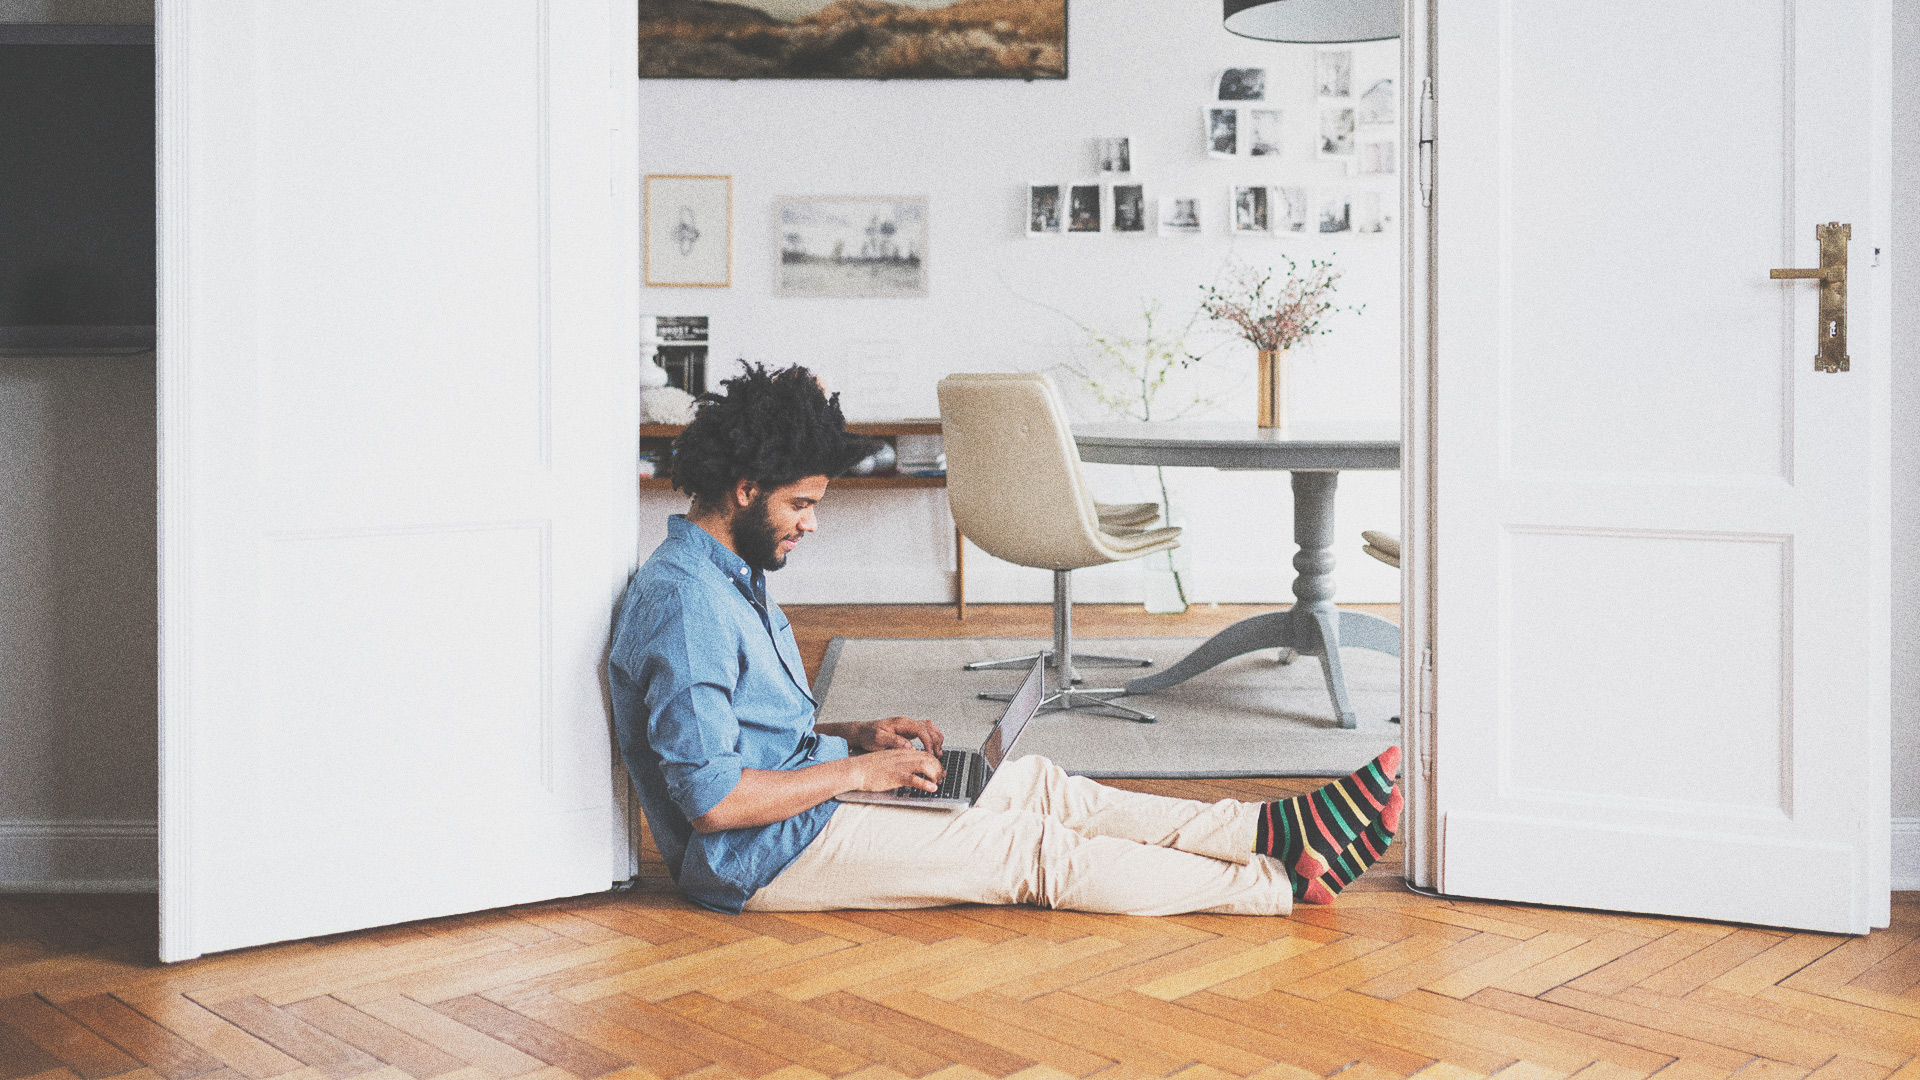 But Even Among The Types Of White Collar Jobs Most Ociated With Telecommuting Work Is Multifarious And Considerations About Best Way To Get It